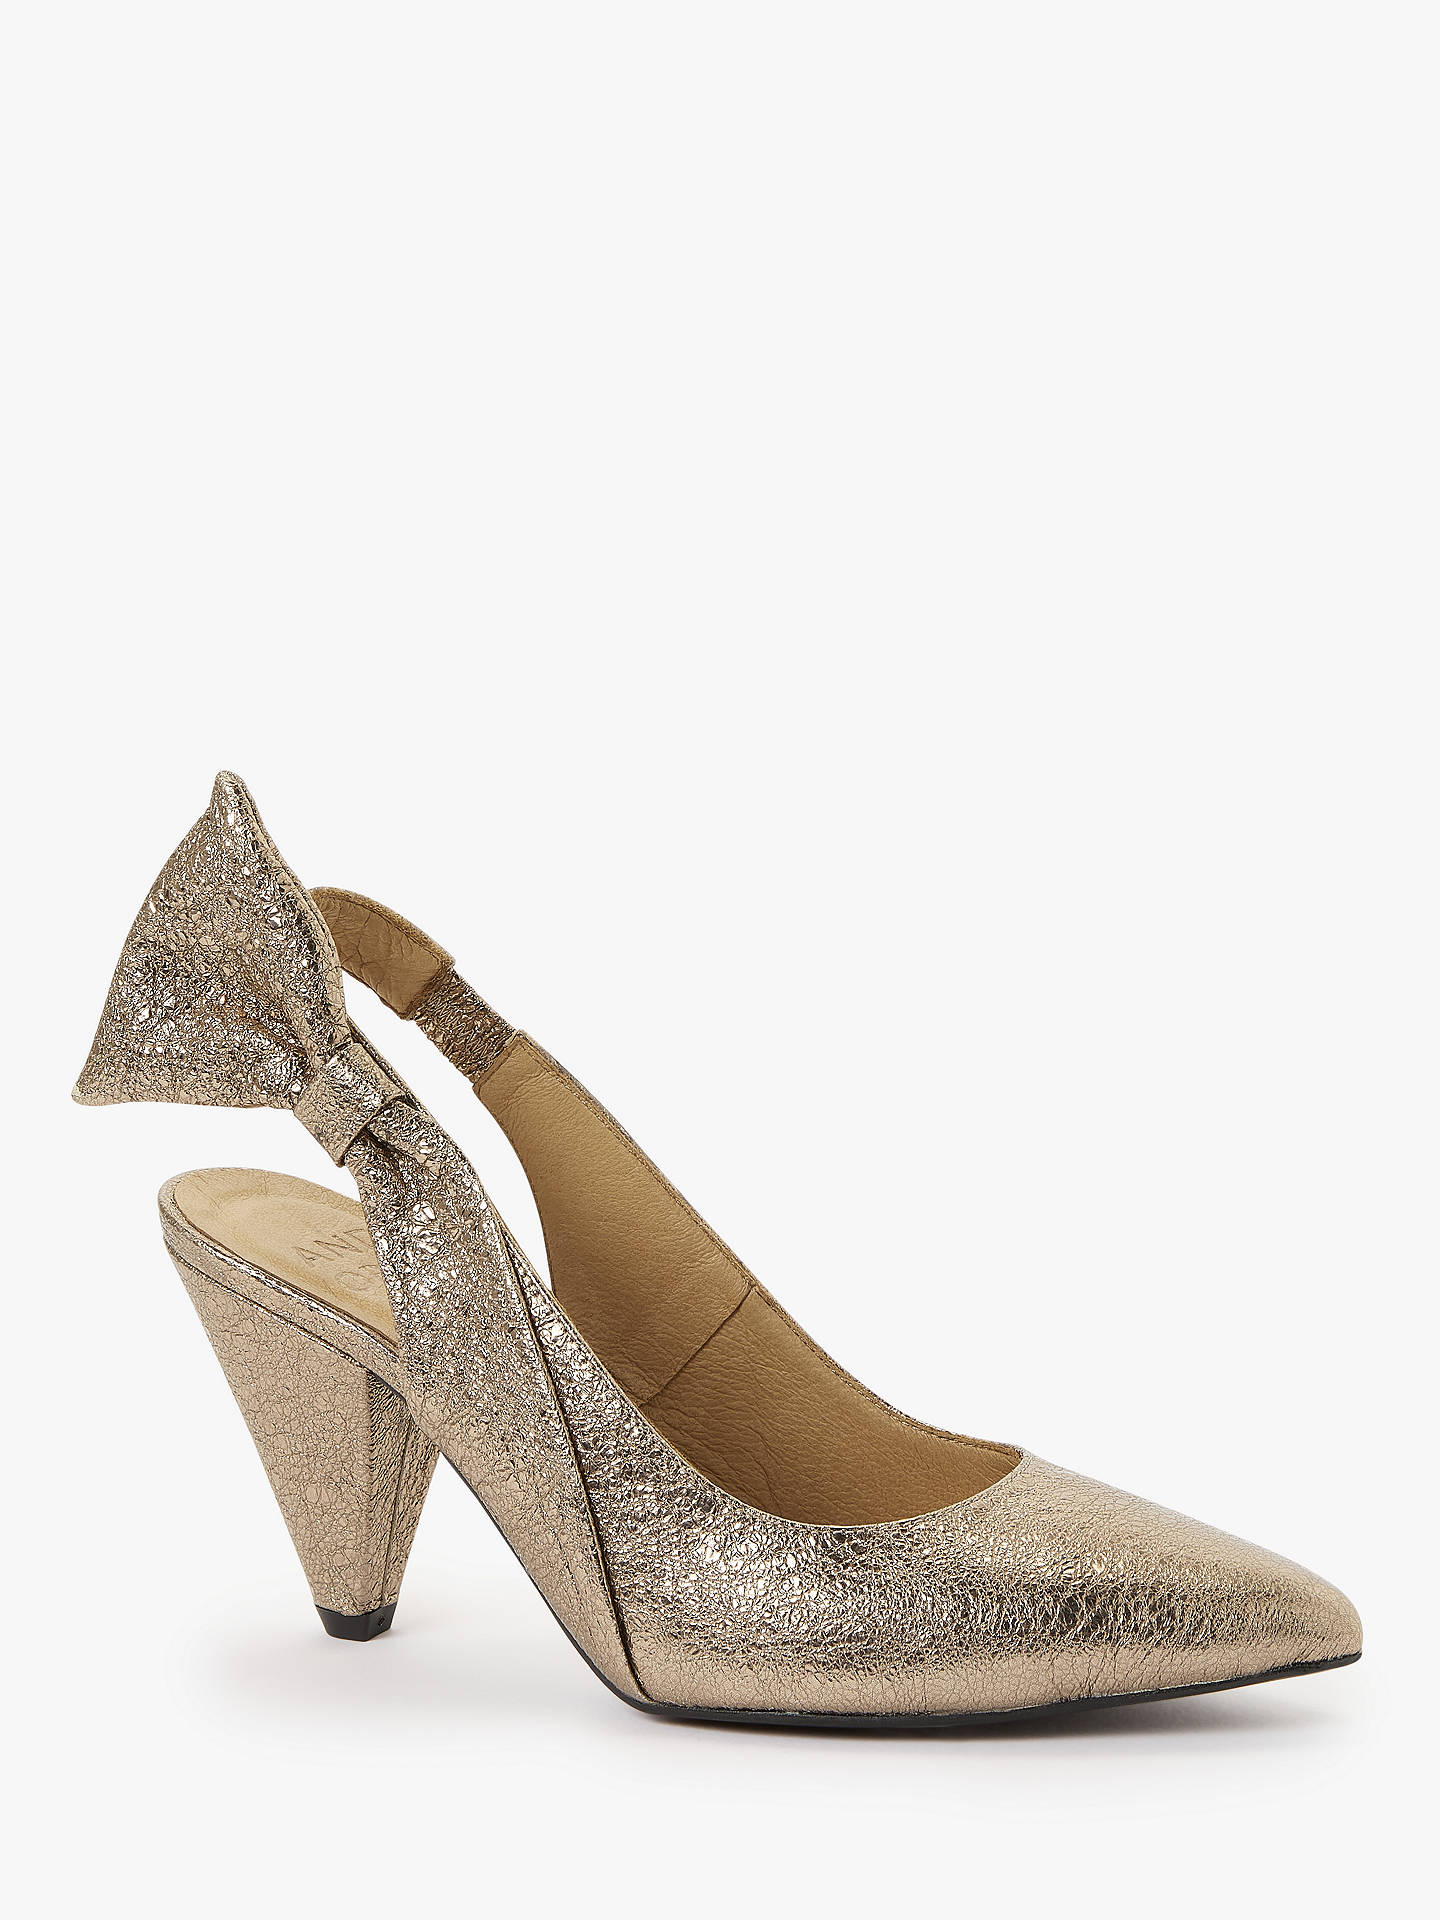 b9770498ca0a1 AND/OR Amili Leather Slingback Court Shoes, Metallic Gold